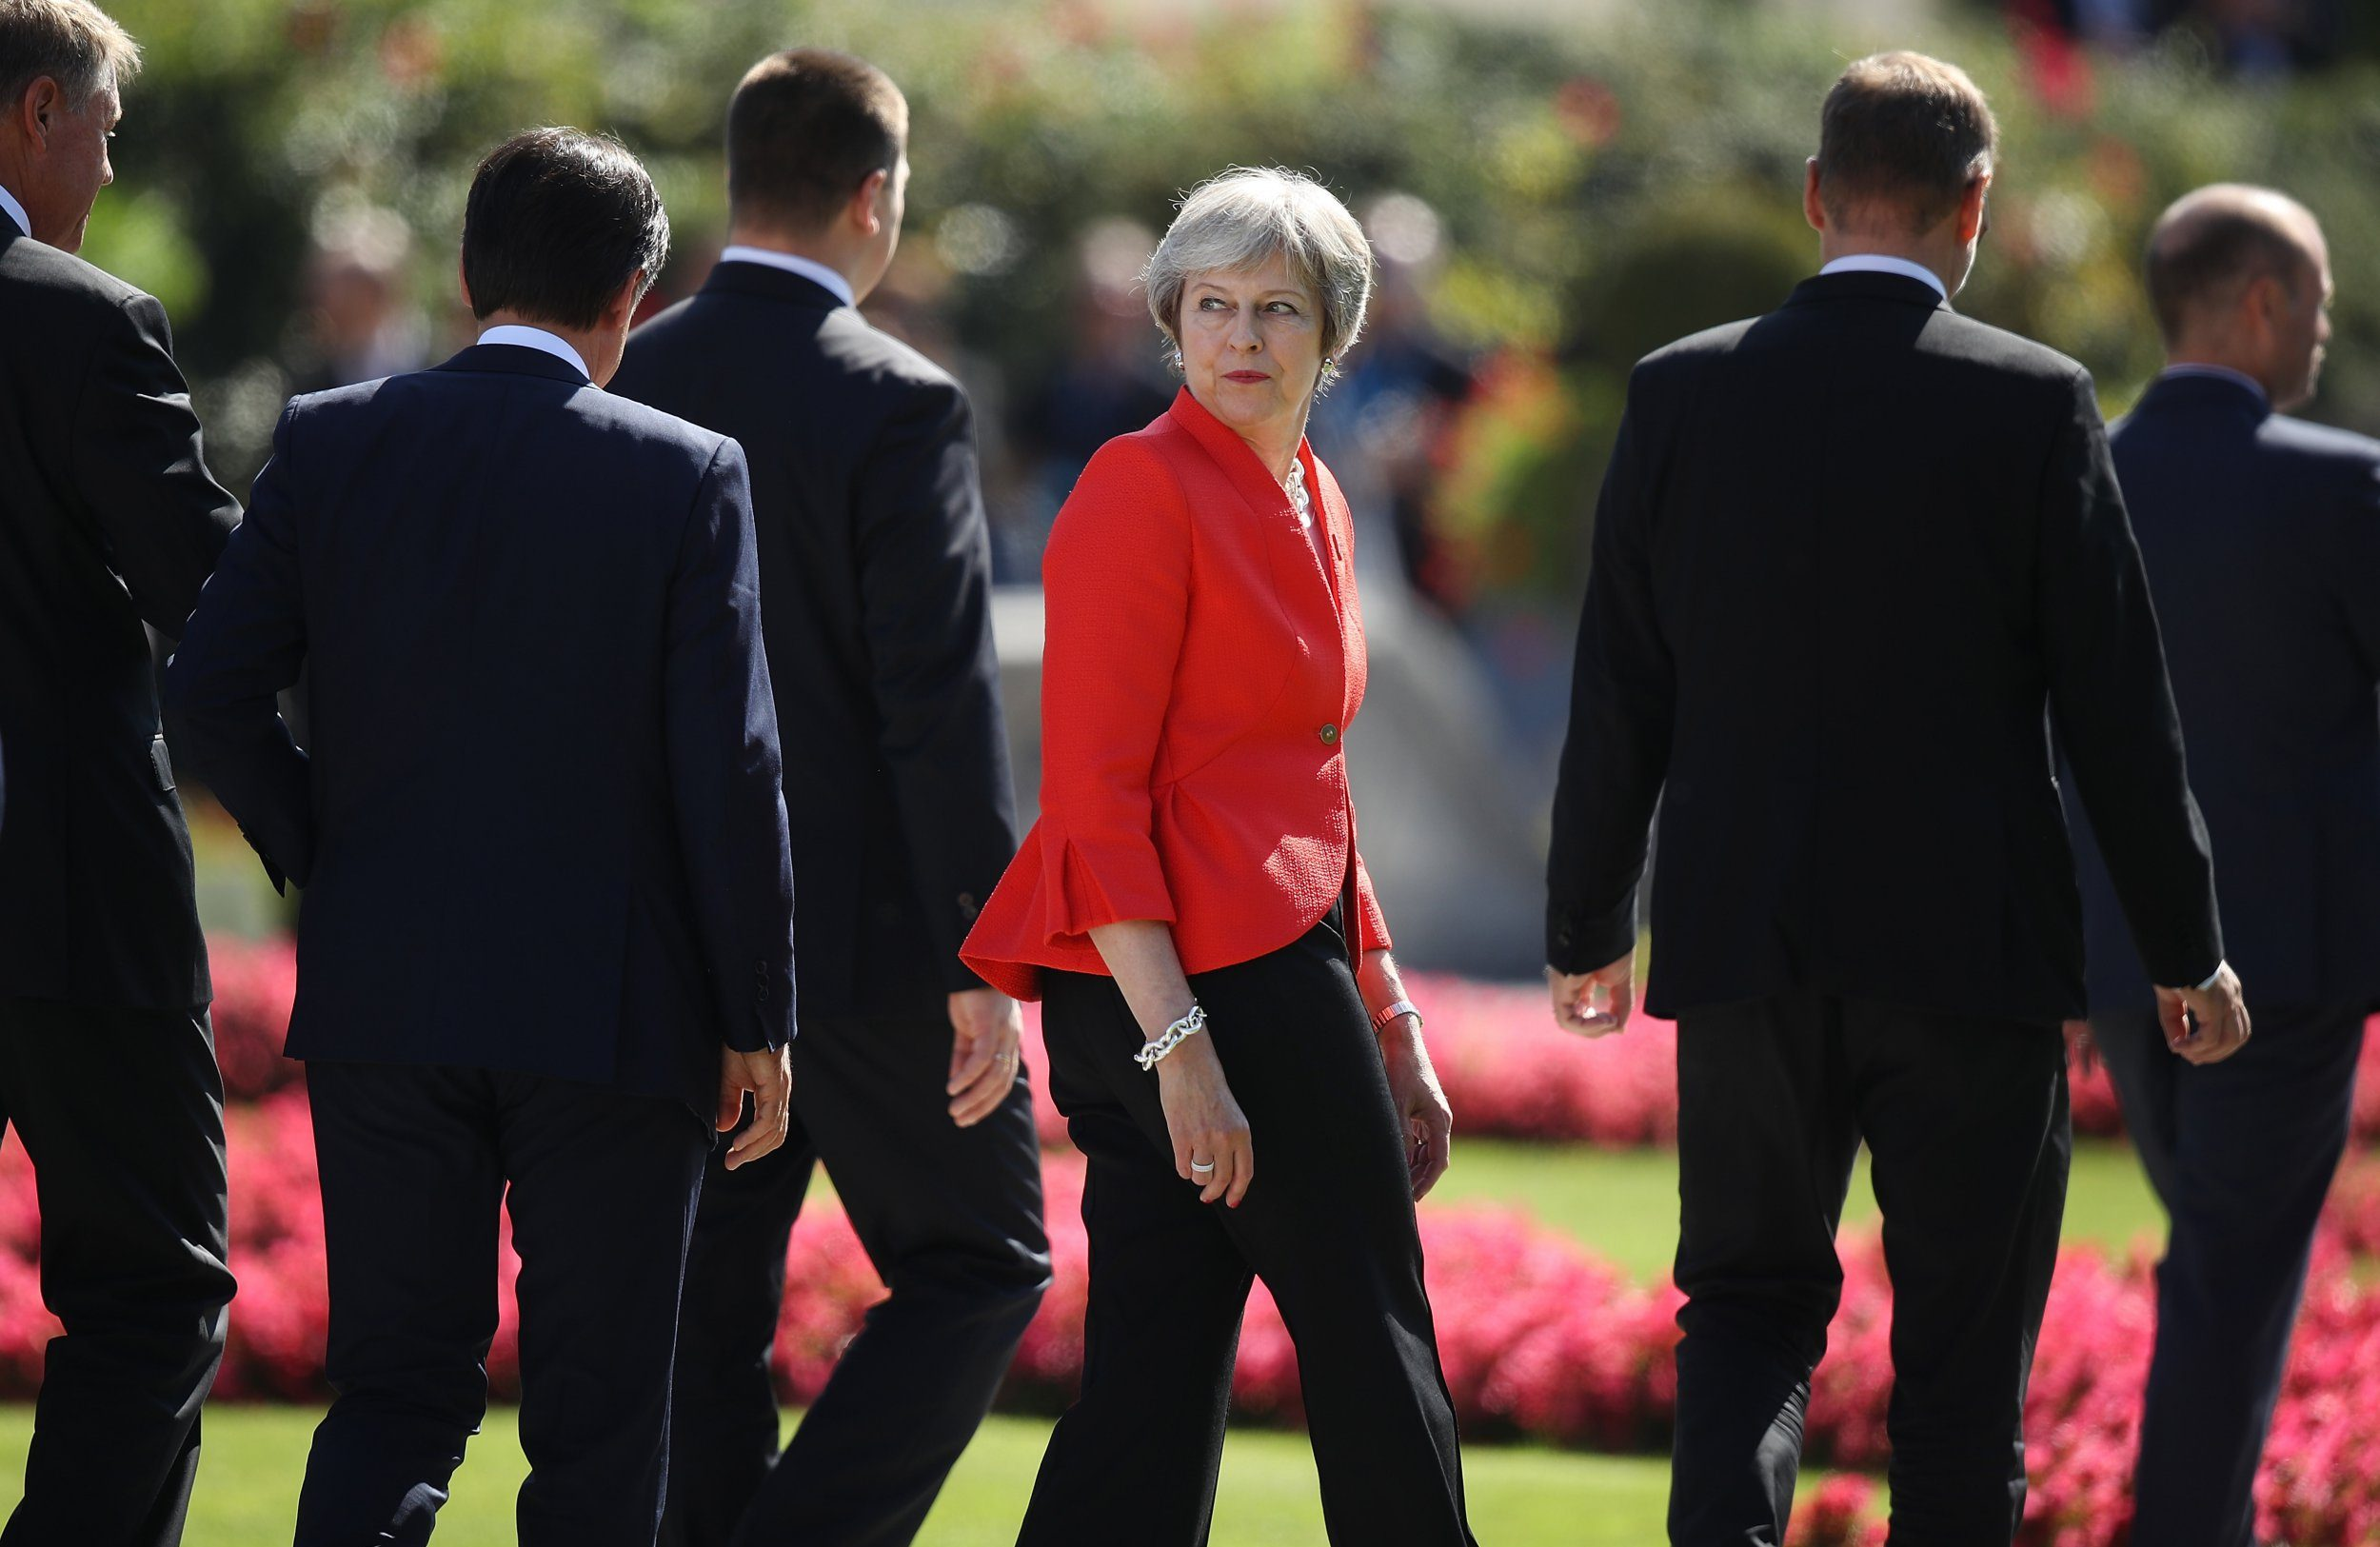 EU says Theresa May's Brexit plan 'will not work' in savage blow to prime minister